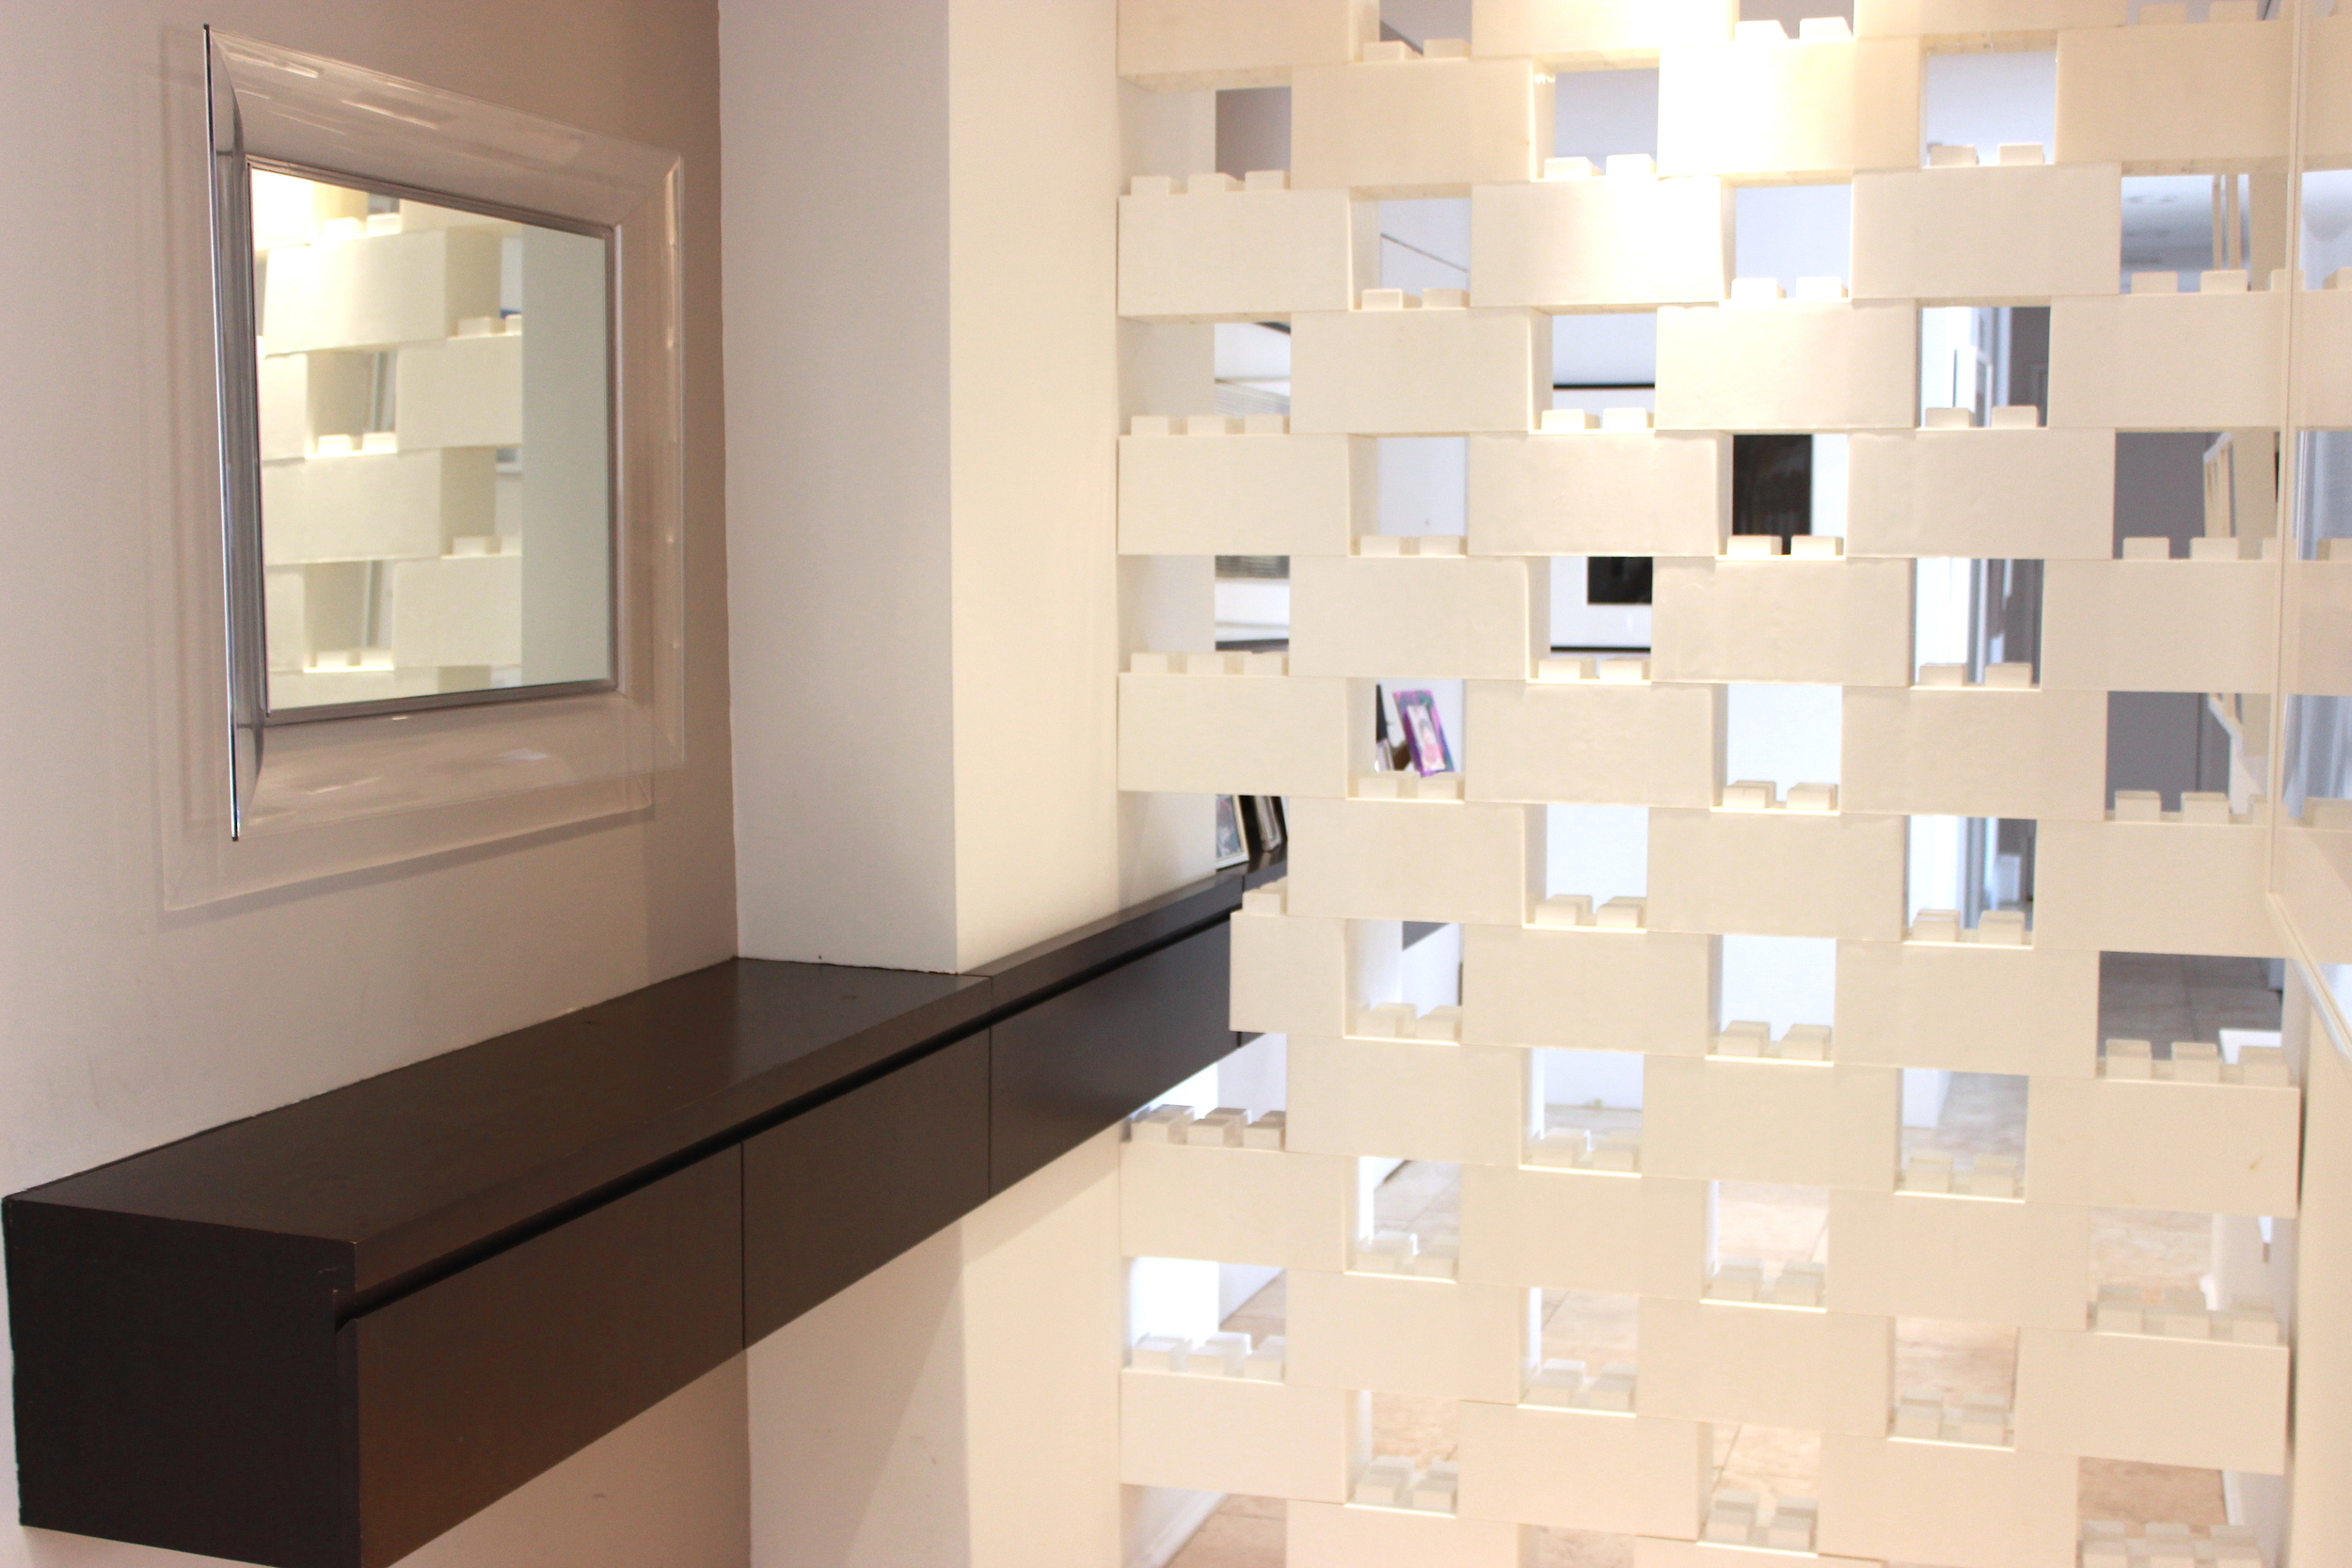 Space out blocks to create ventilation and partially see-through divider walls